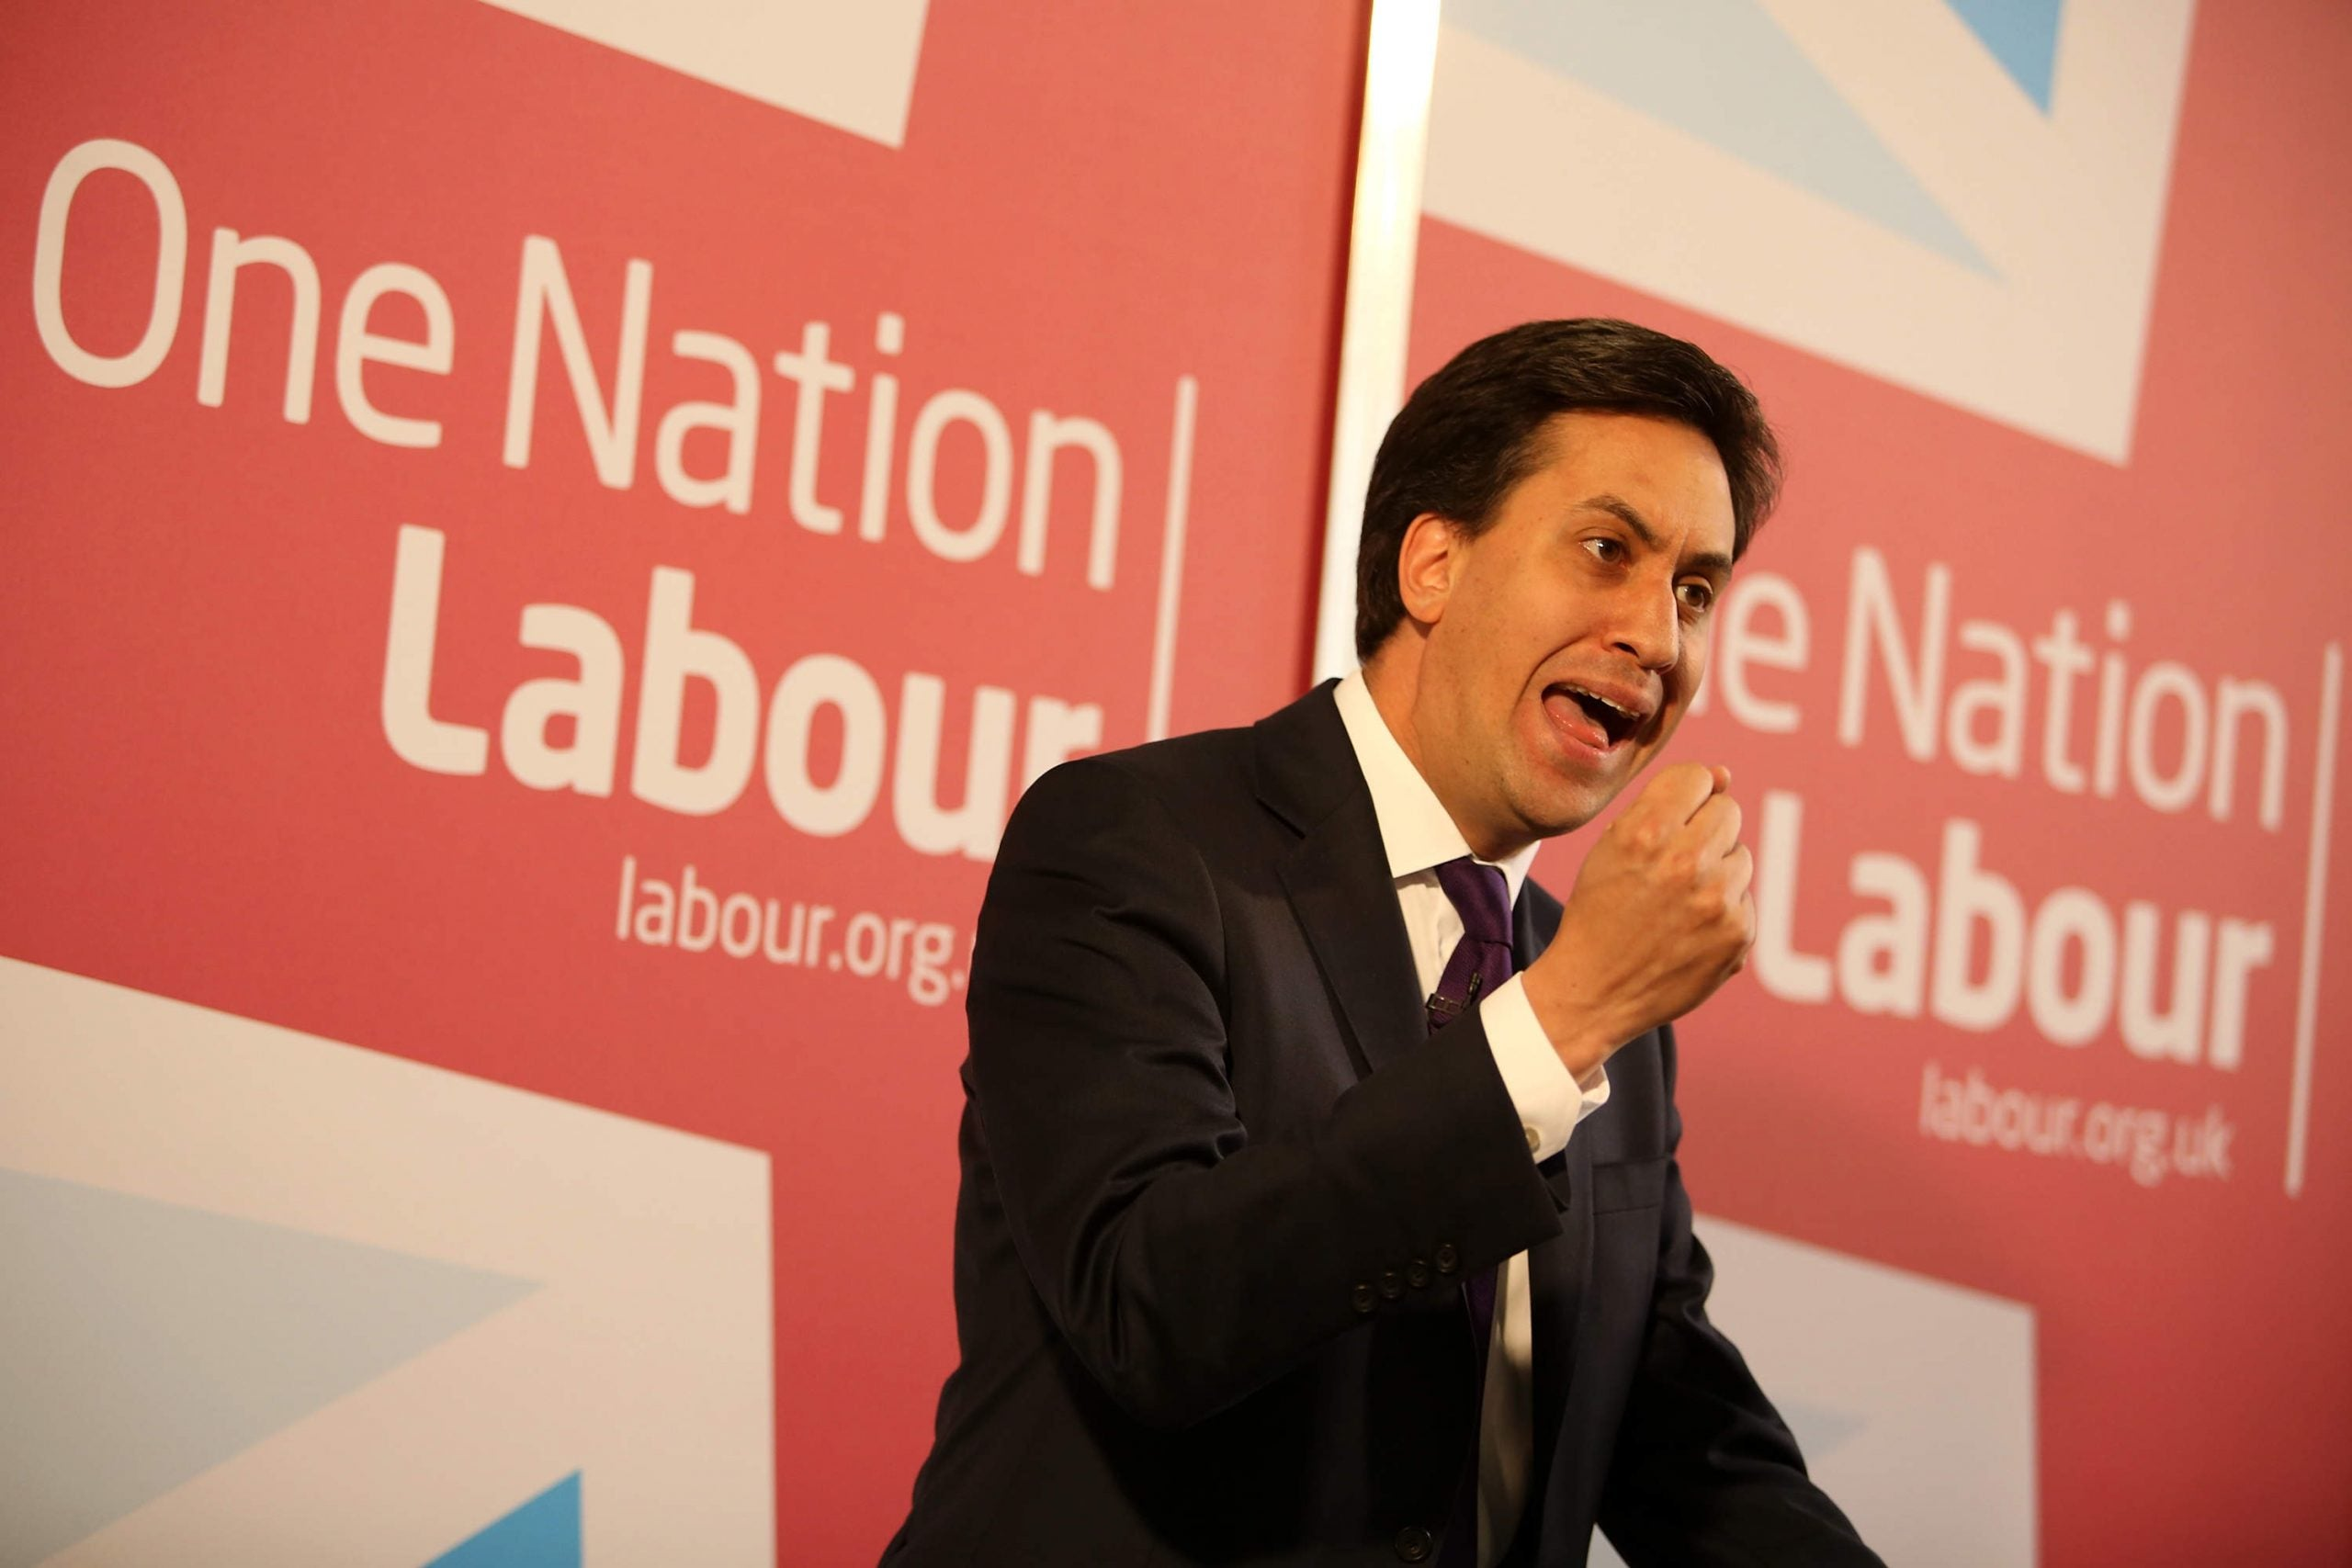 Ed Miliband's Special Conference speech: the three key themes